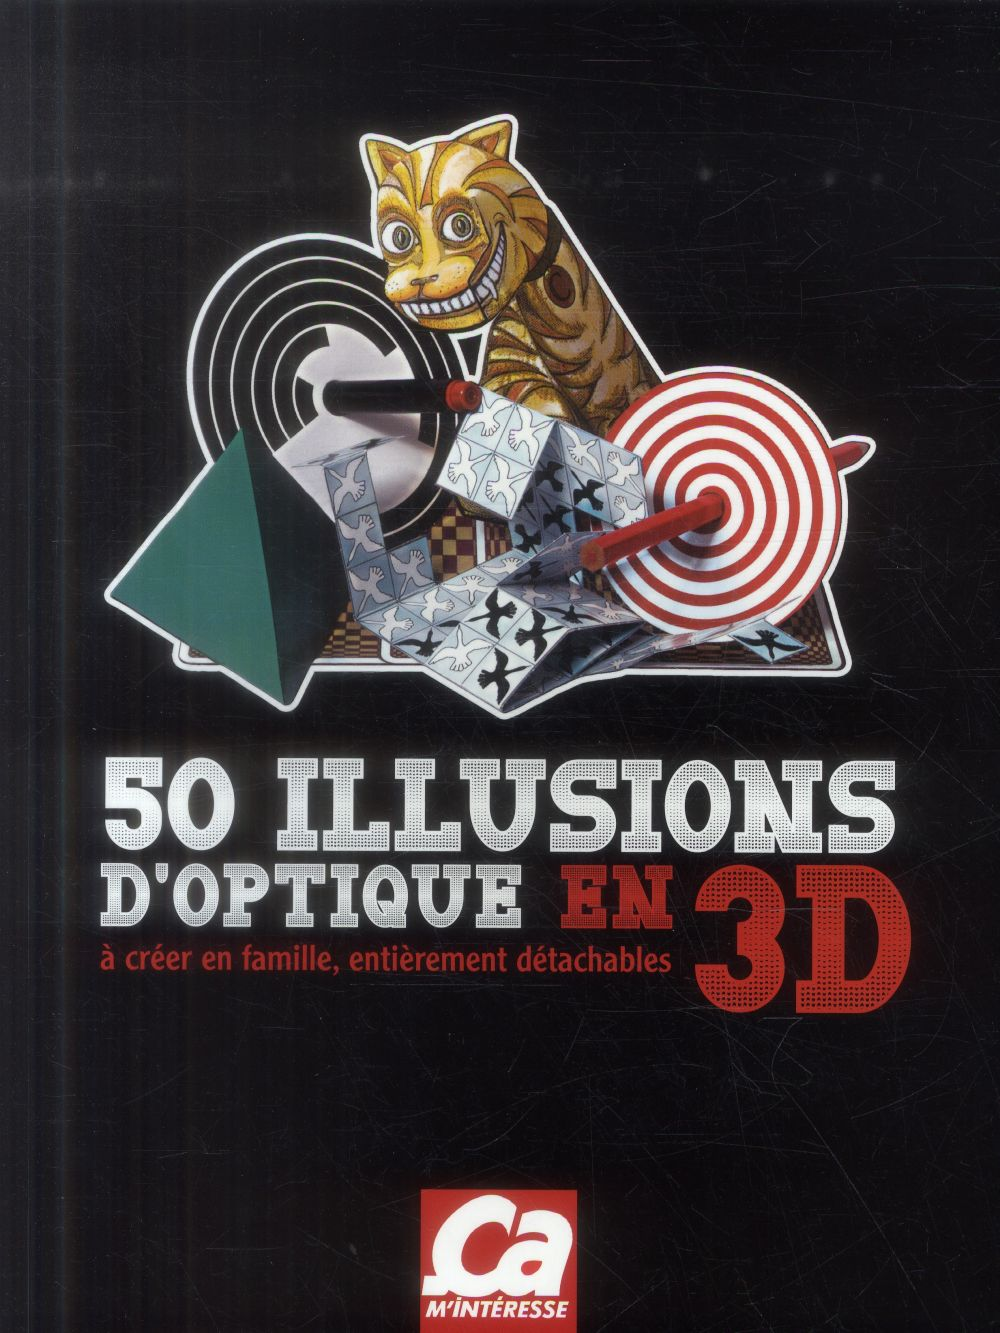 50 illusions d'optique en 3d